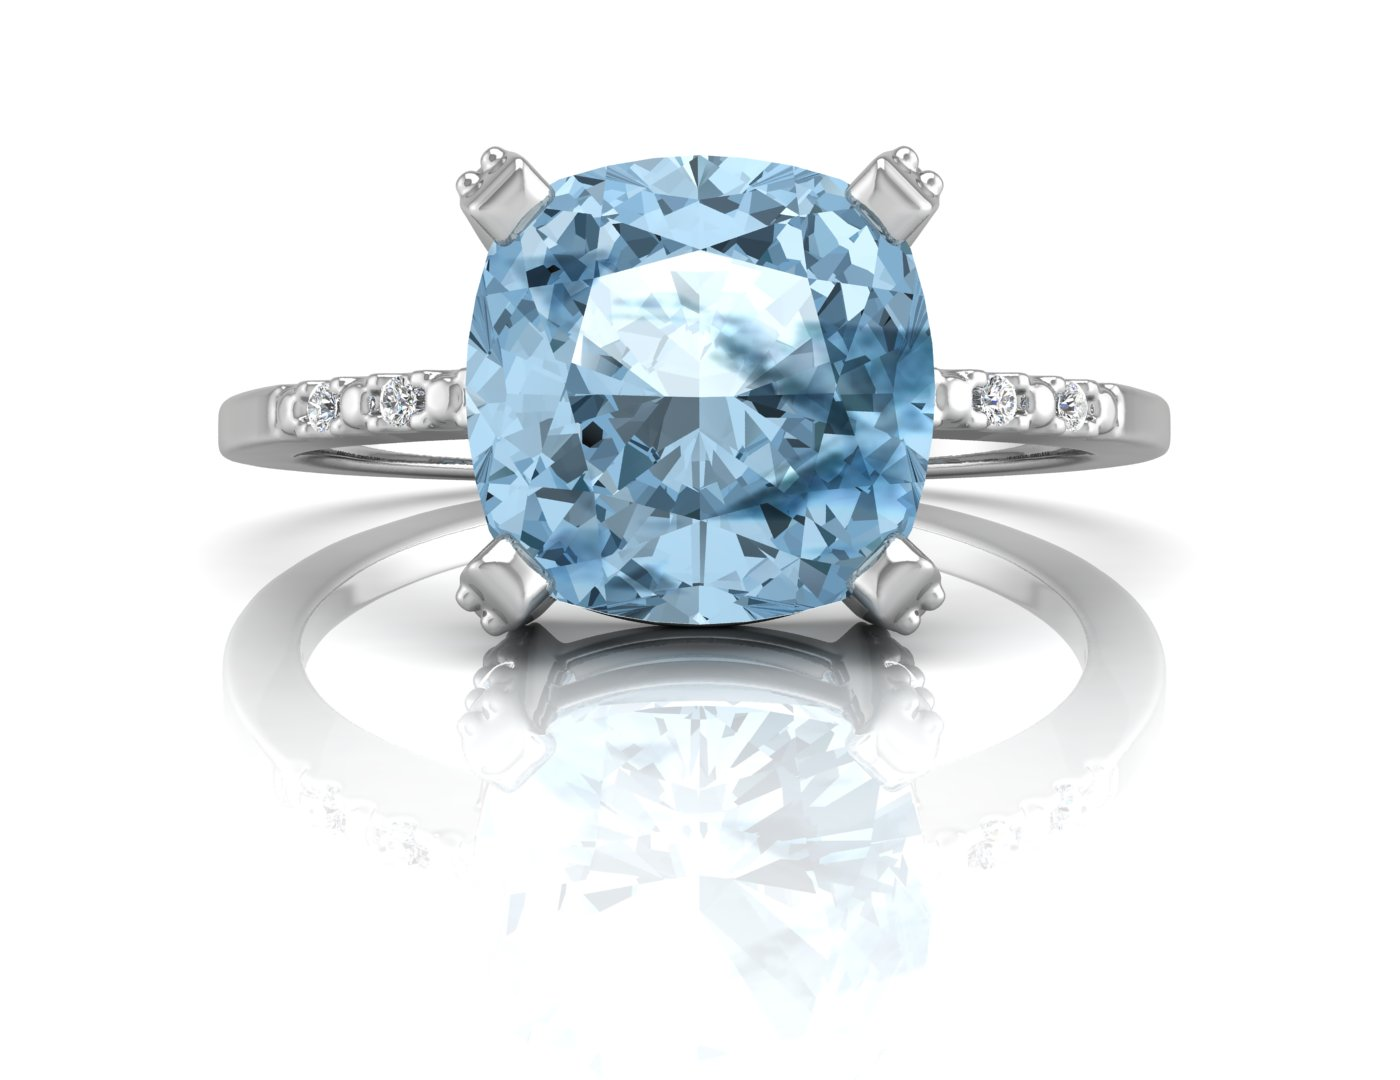 9ct White Gold Diamond And Blue Topaz Ring 0.04 Carats - Image 4 of 4